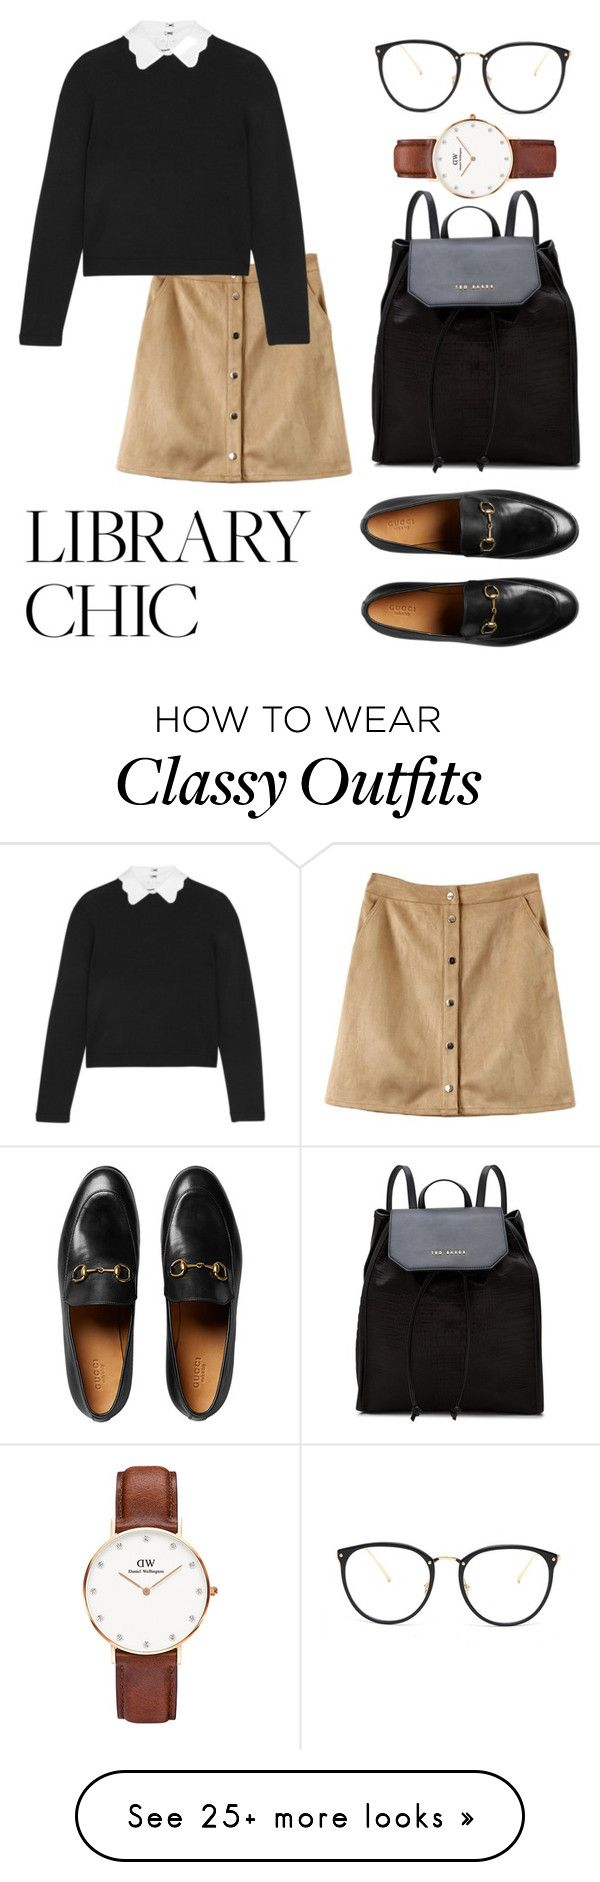 """""""Library Chic"""" by rainbow-spirit-teahouse on Polyvore featuring Alice + Olivia, Gucci, Daniel Wellington, Linda Farrow and Ted Baker"""